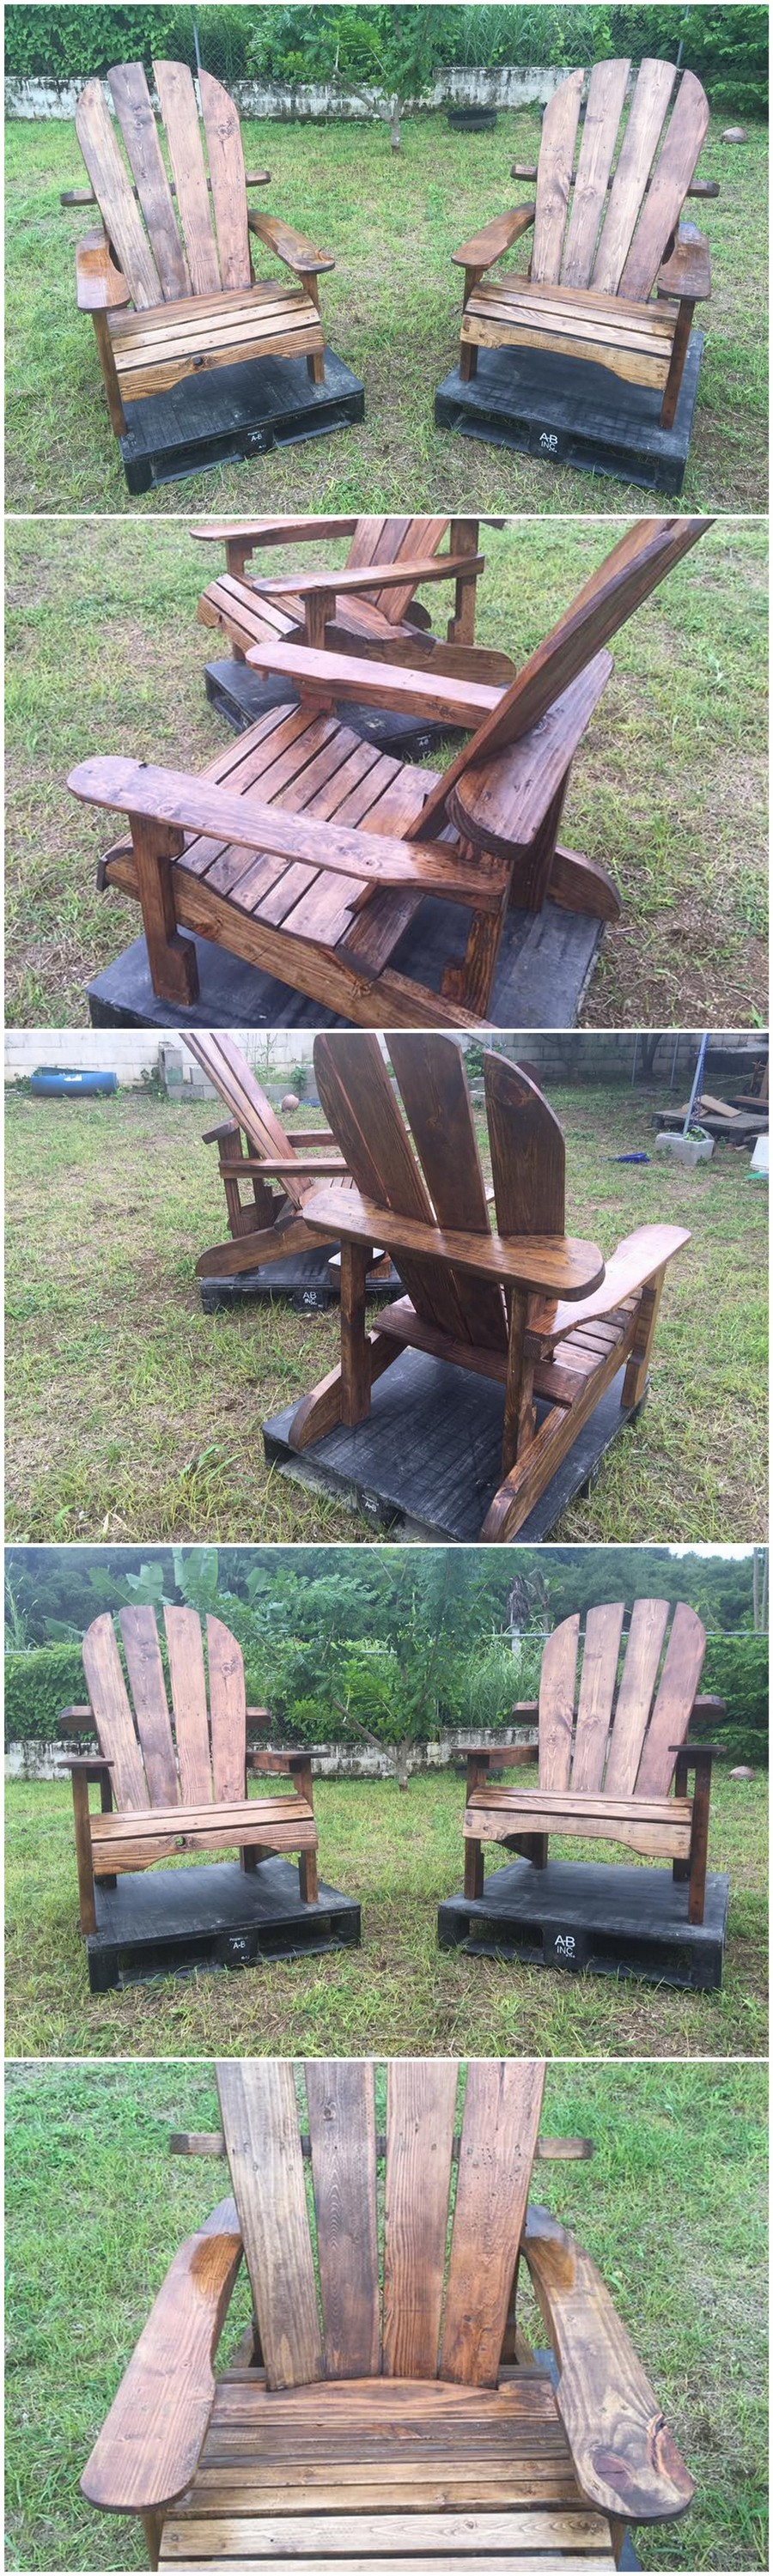 recycled-pallet-adirondack-chairs